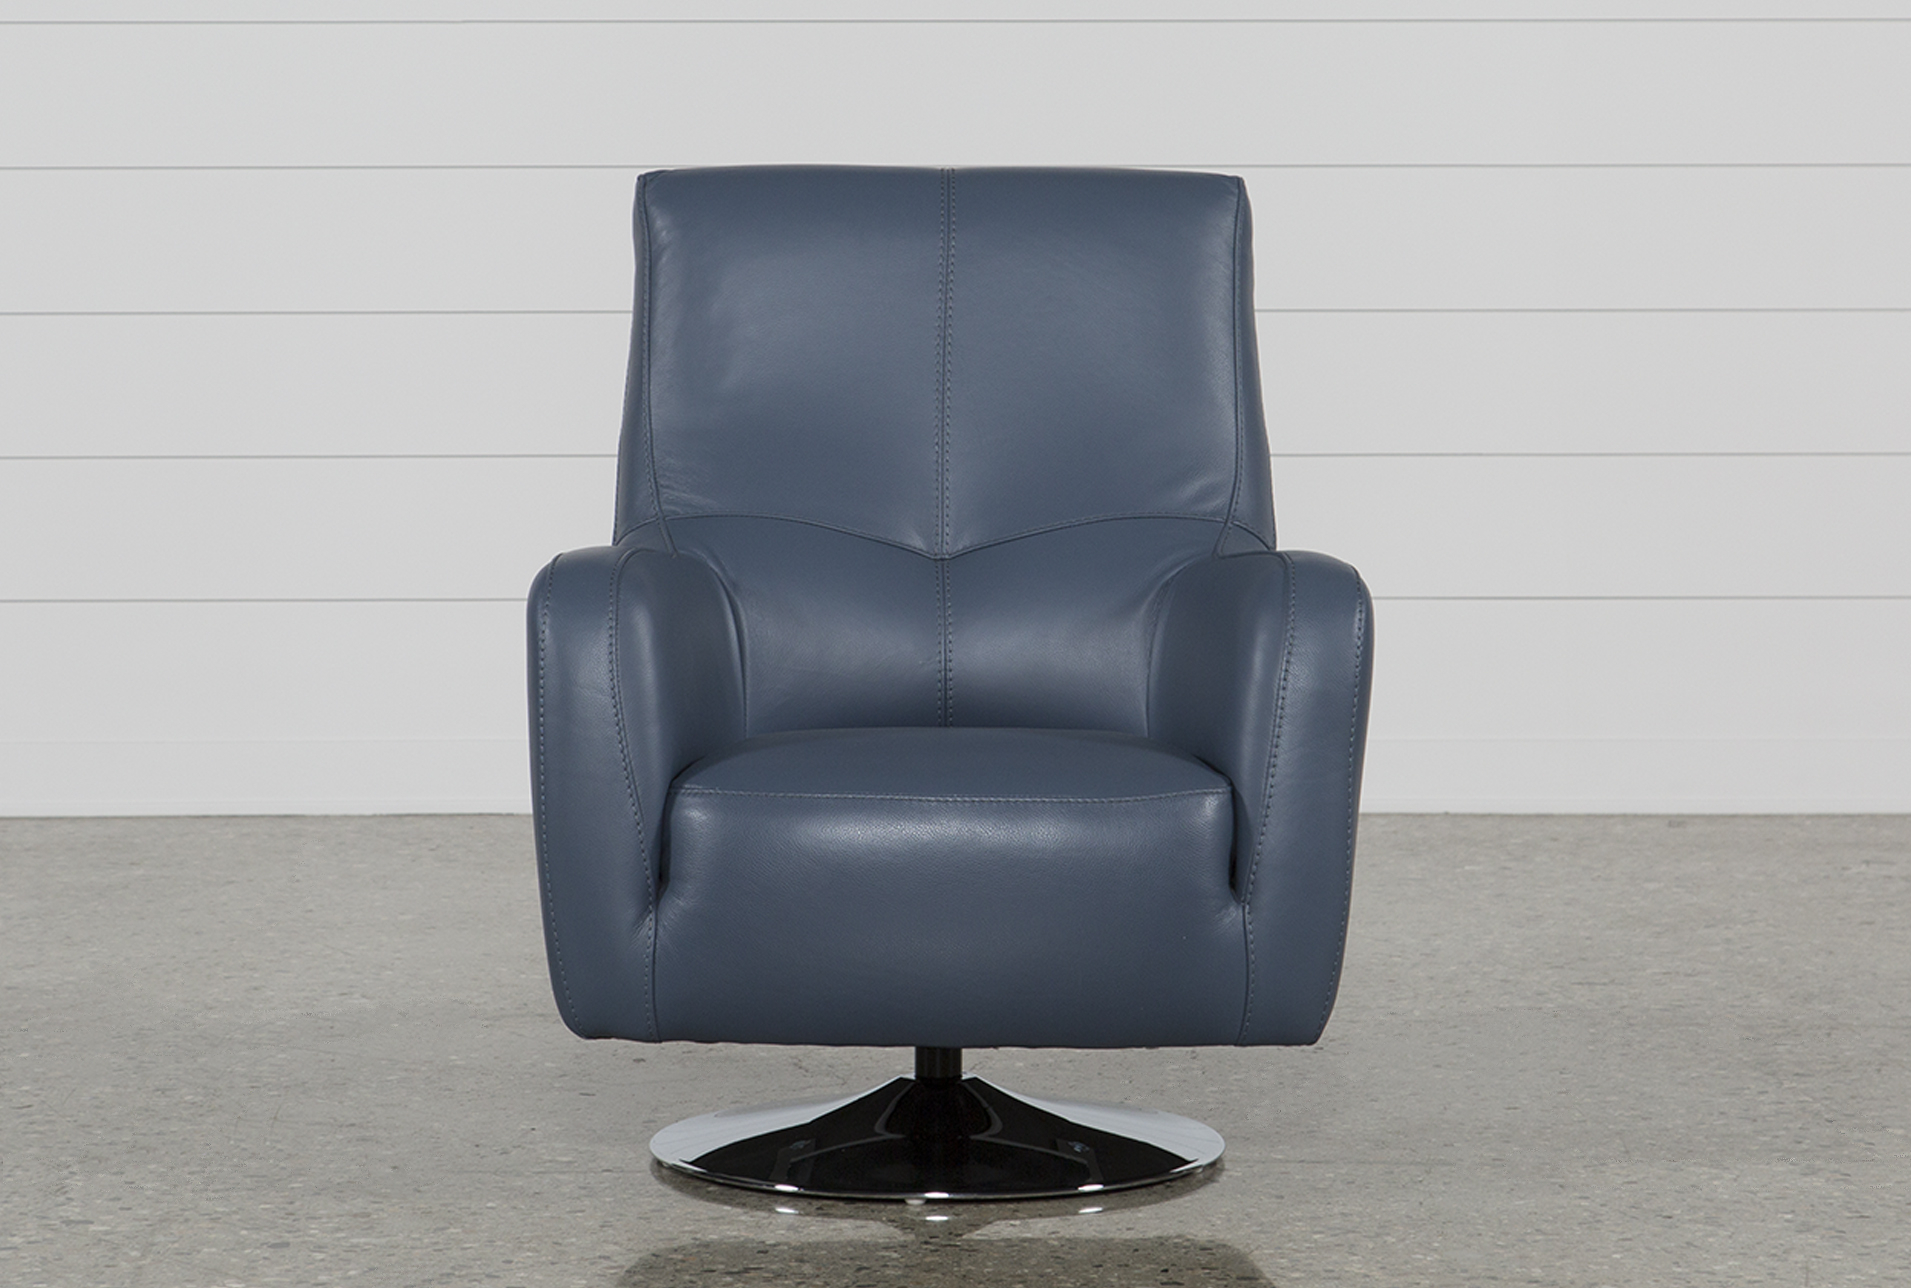 Kawai Leather Swivel Chair | Products | Pinterest | Leather Swivel Within Kawai Leather Swivel Chairs (Image 15 of 25)